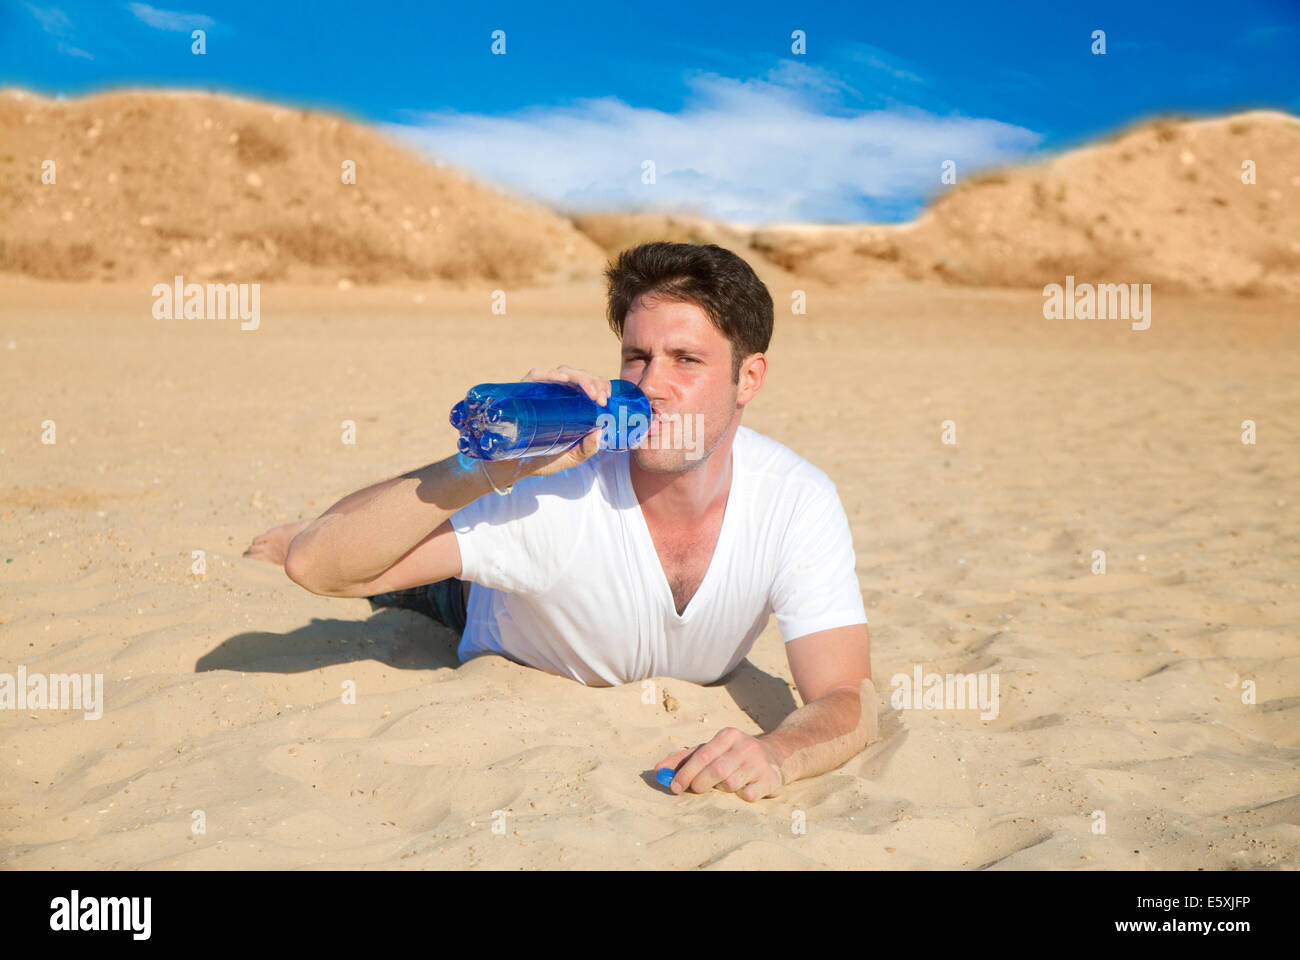 Thirsty man drinking water in the desert - Stock Image